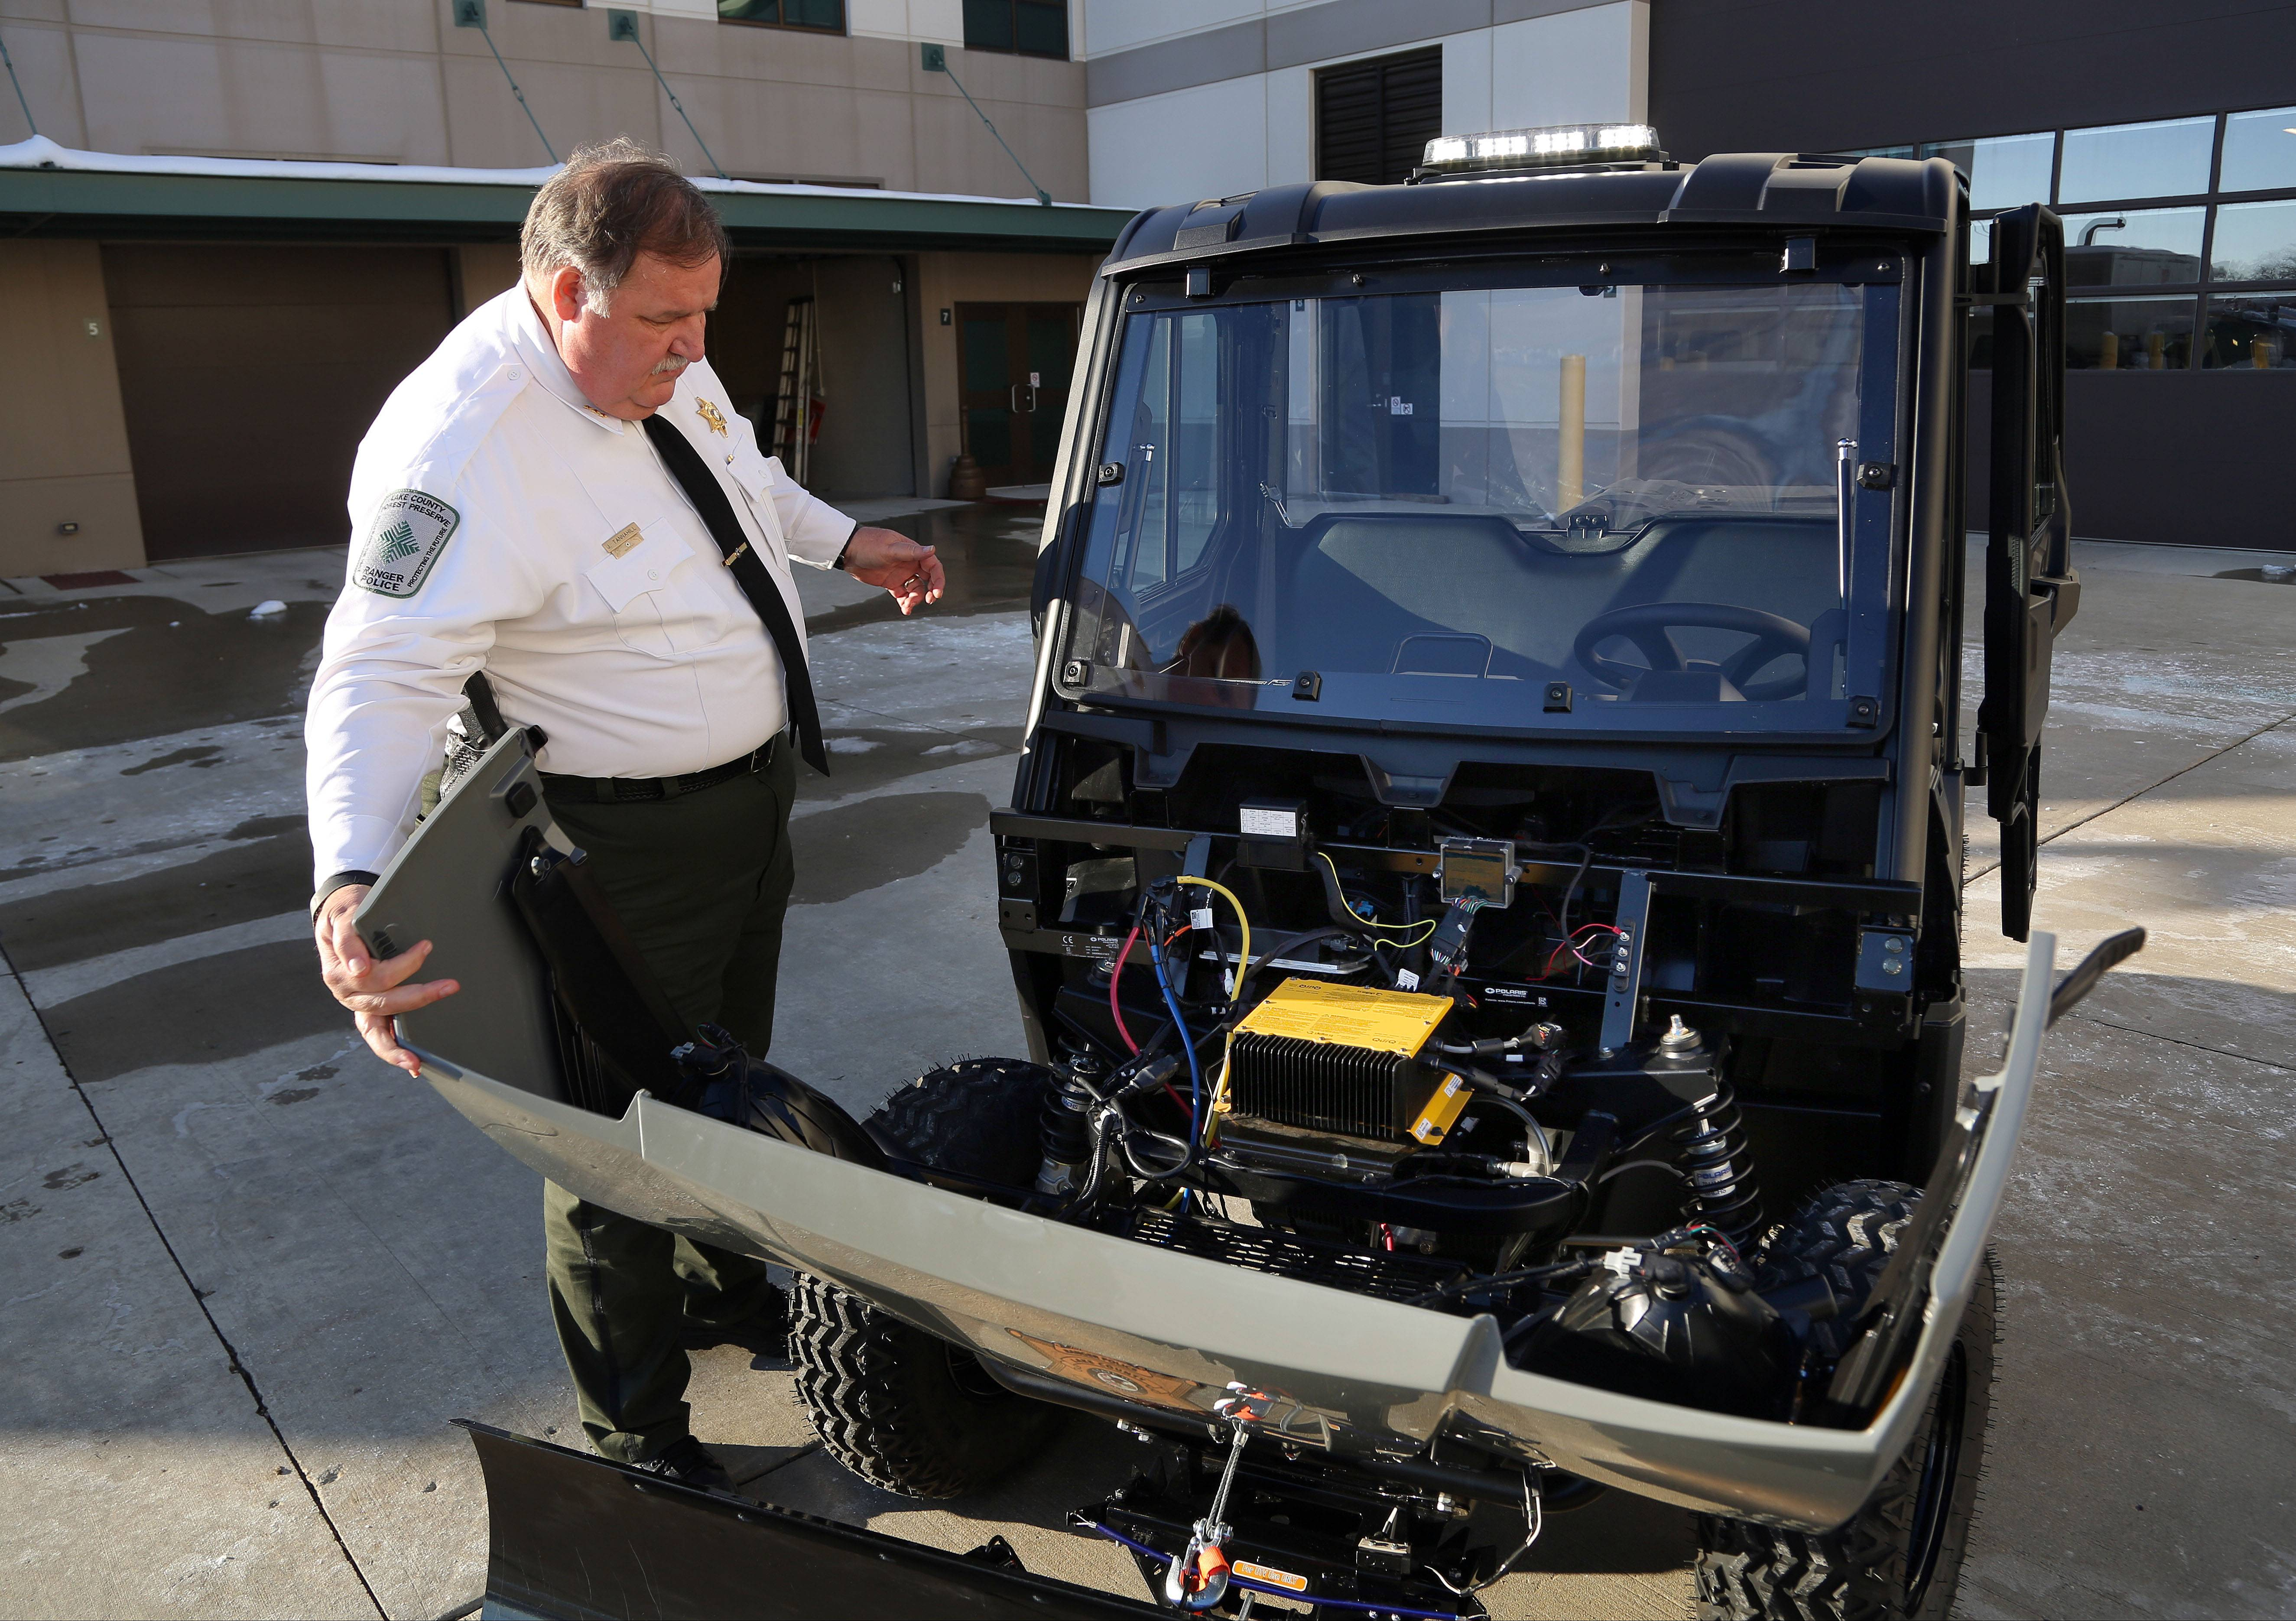 Lake County Forest Preserve District Director of Public Safety John Tannahill opens the hood of their new all-electric Polaris Ranger 4x4.